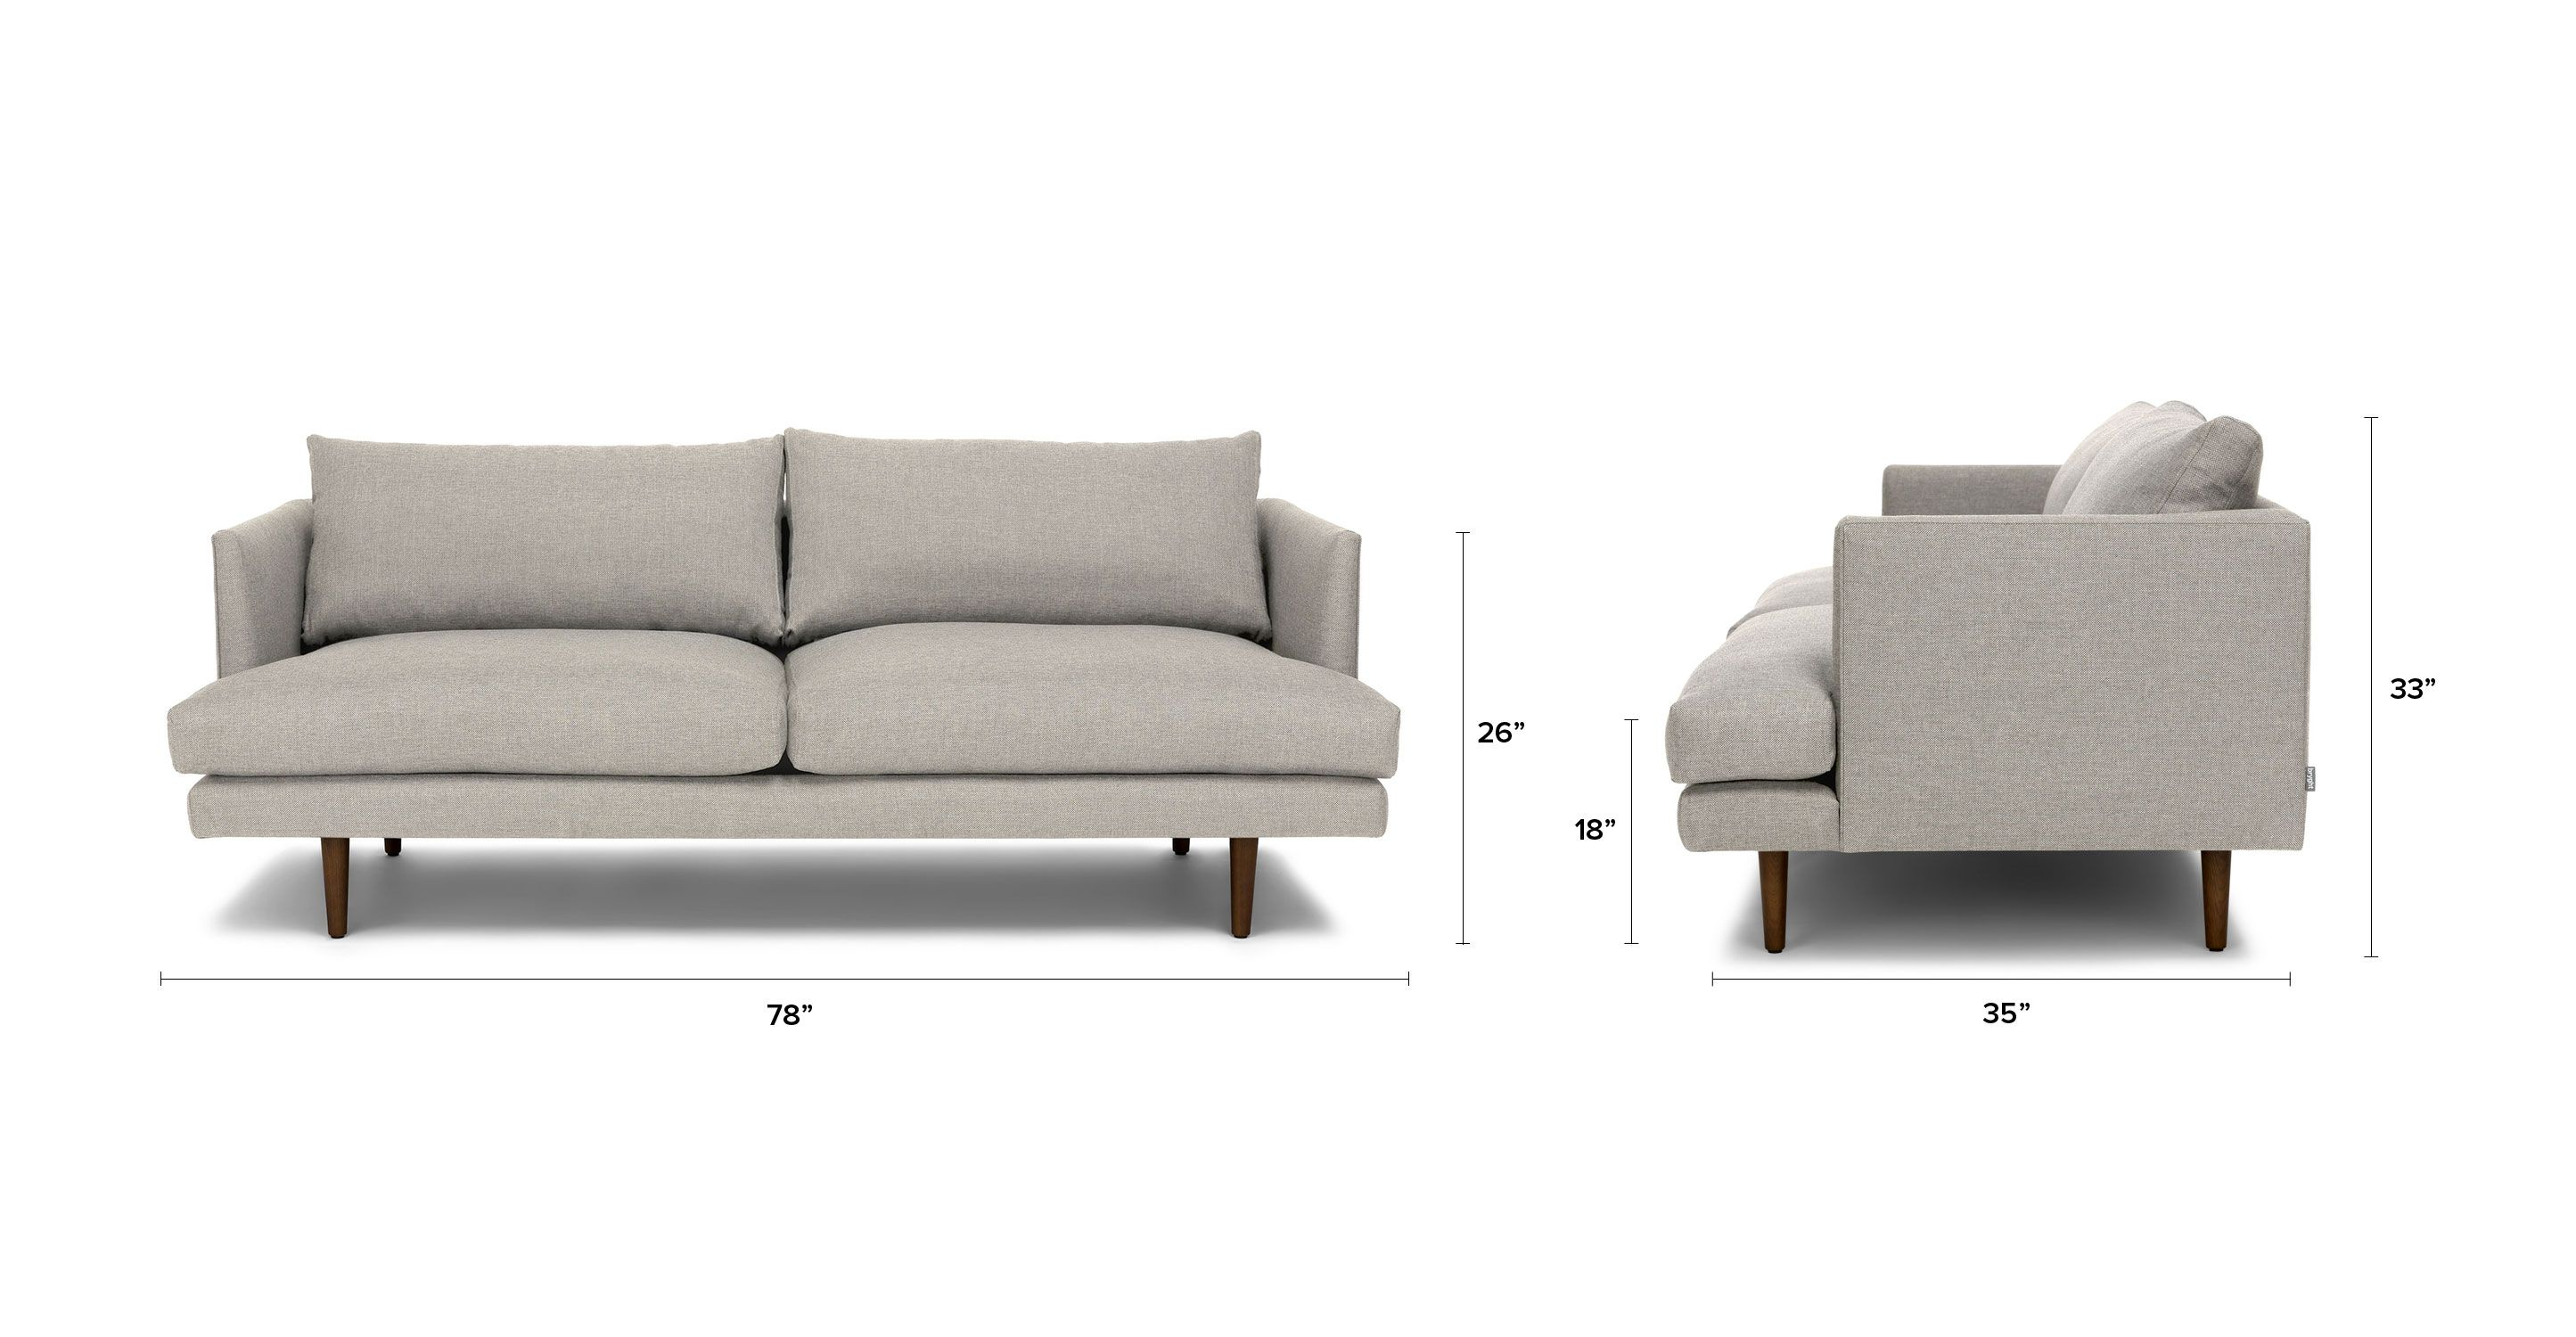 Light Gray Sofa With Solid Wood Legs Article Burrard Modern